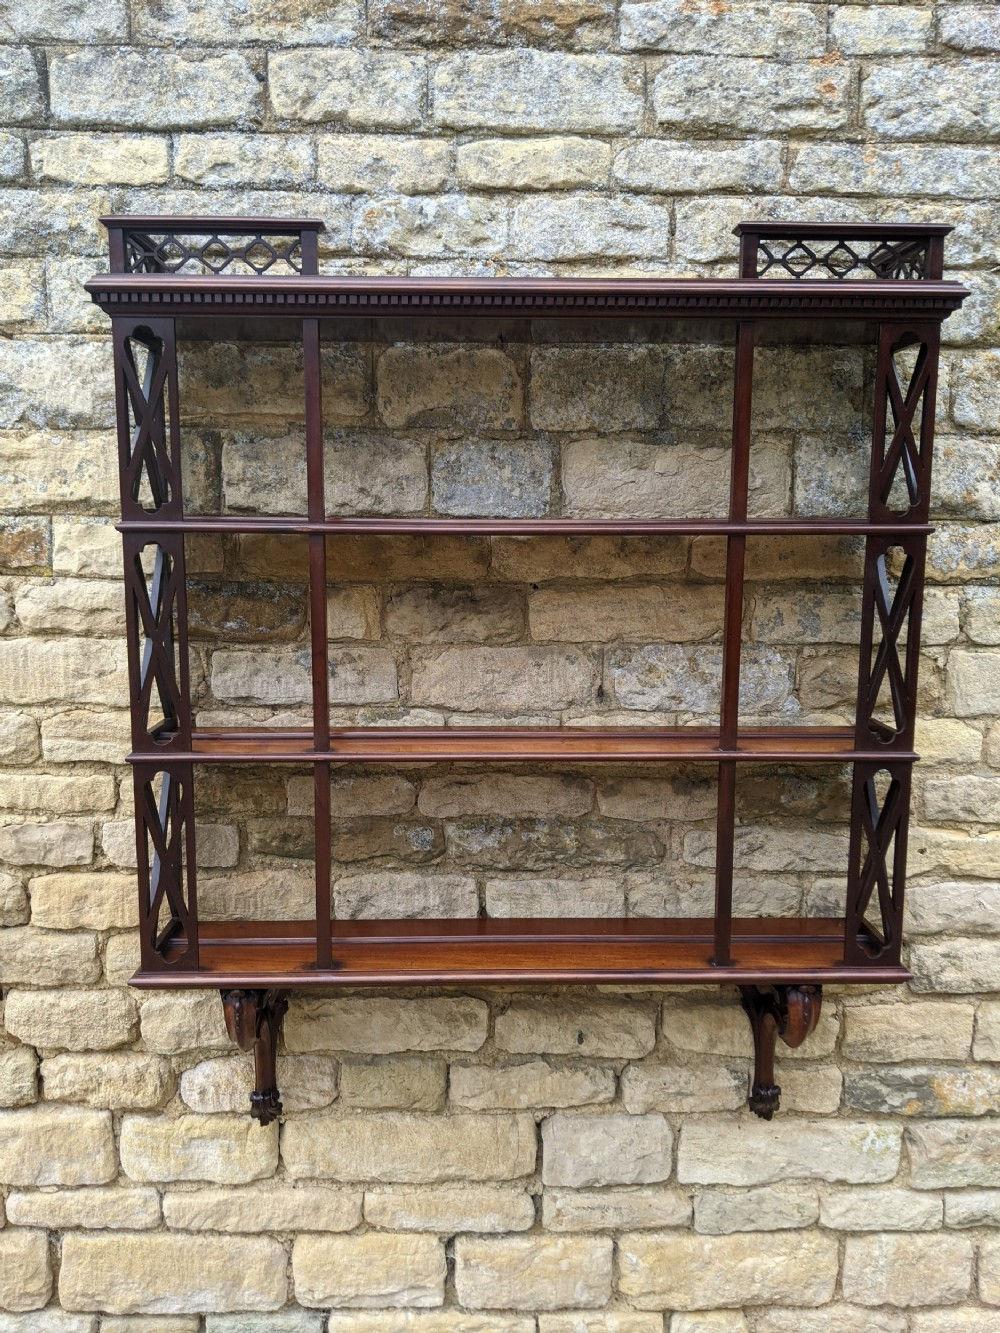 exceptional quality early 19th century wall display